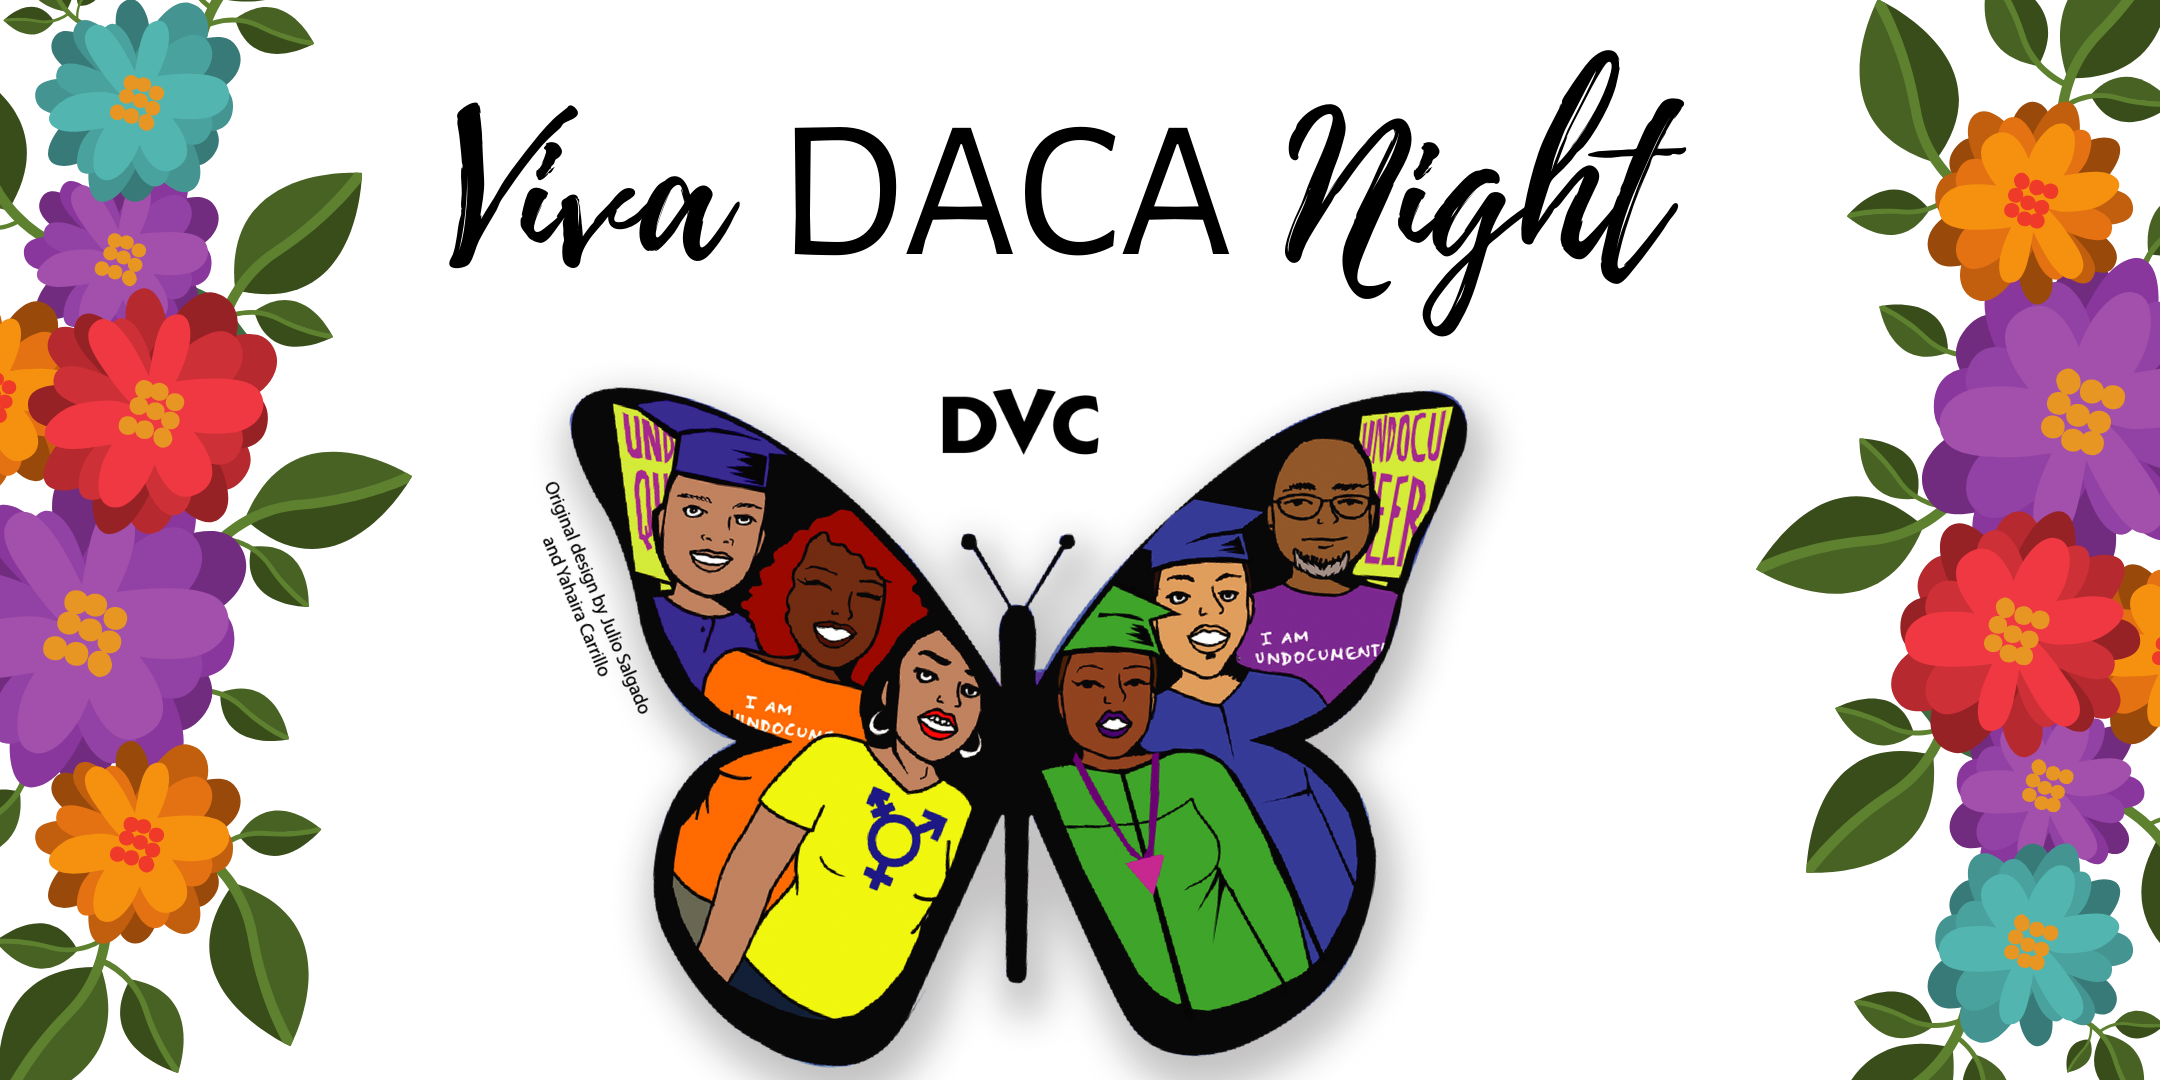 Viva DACA Night Banner